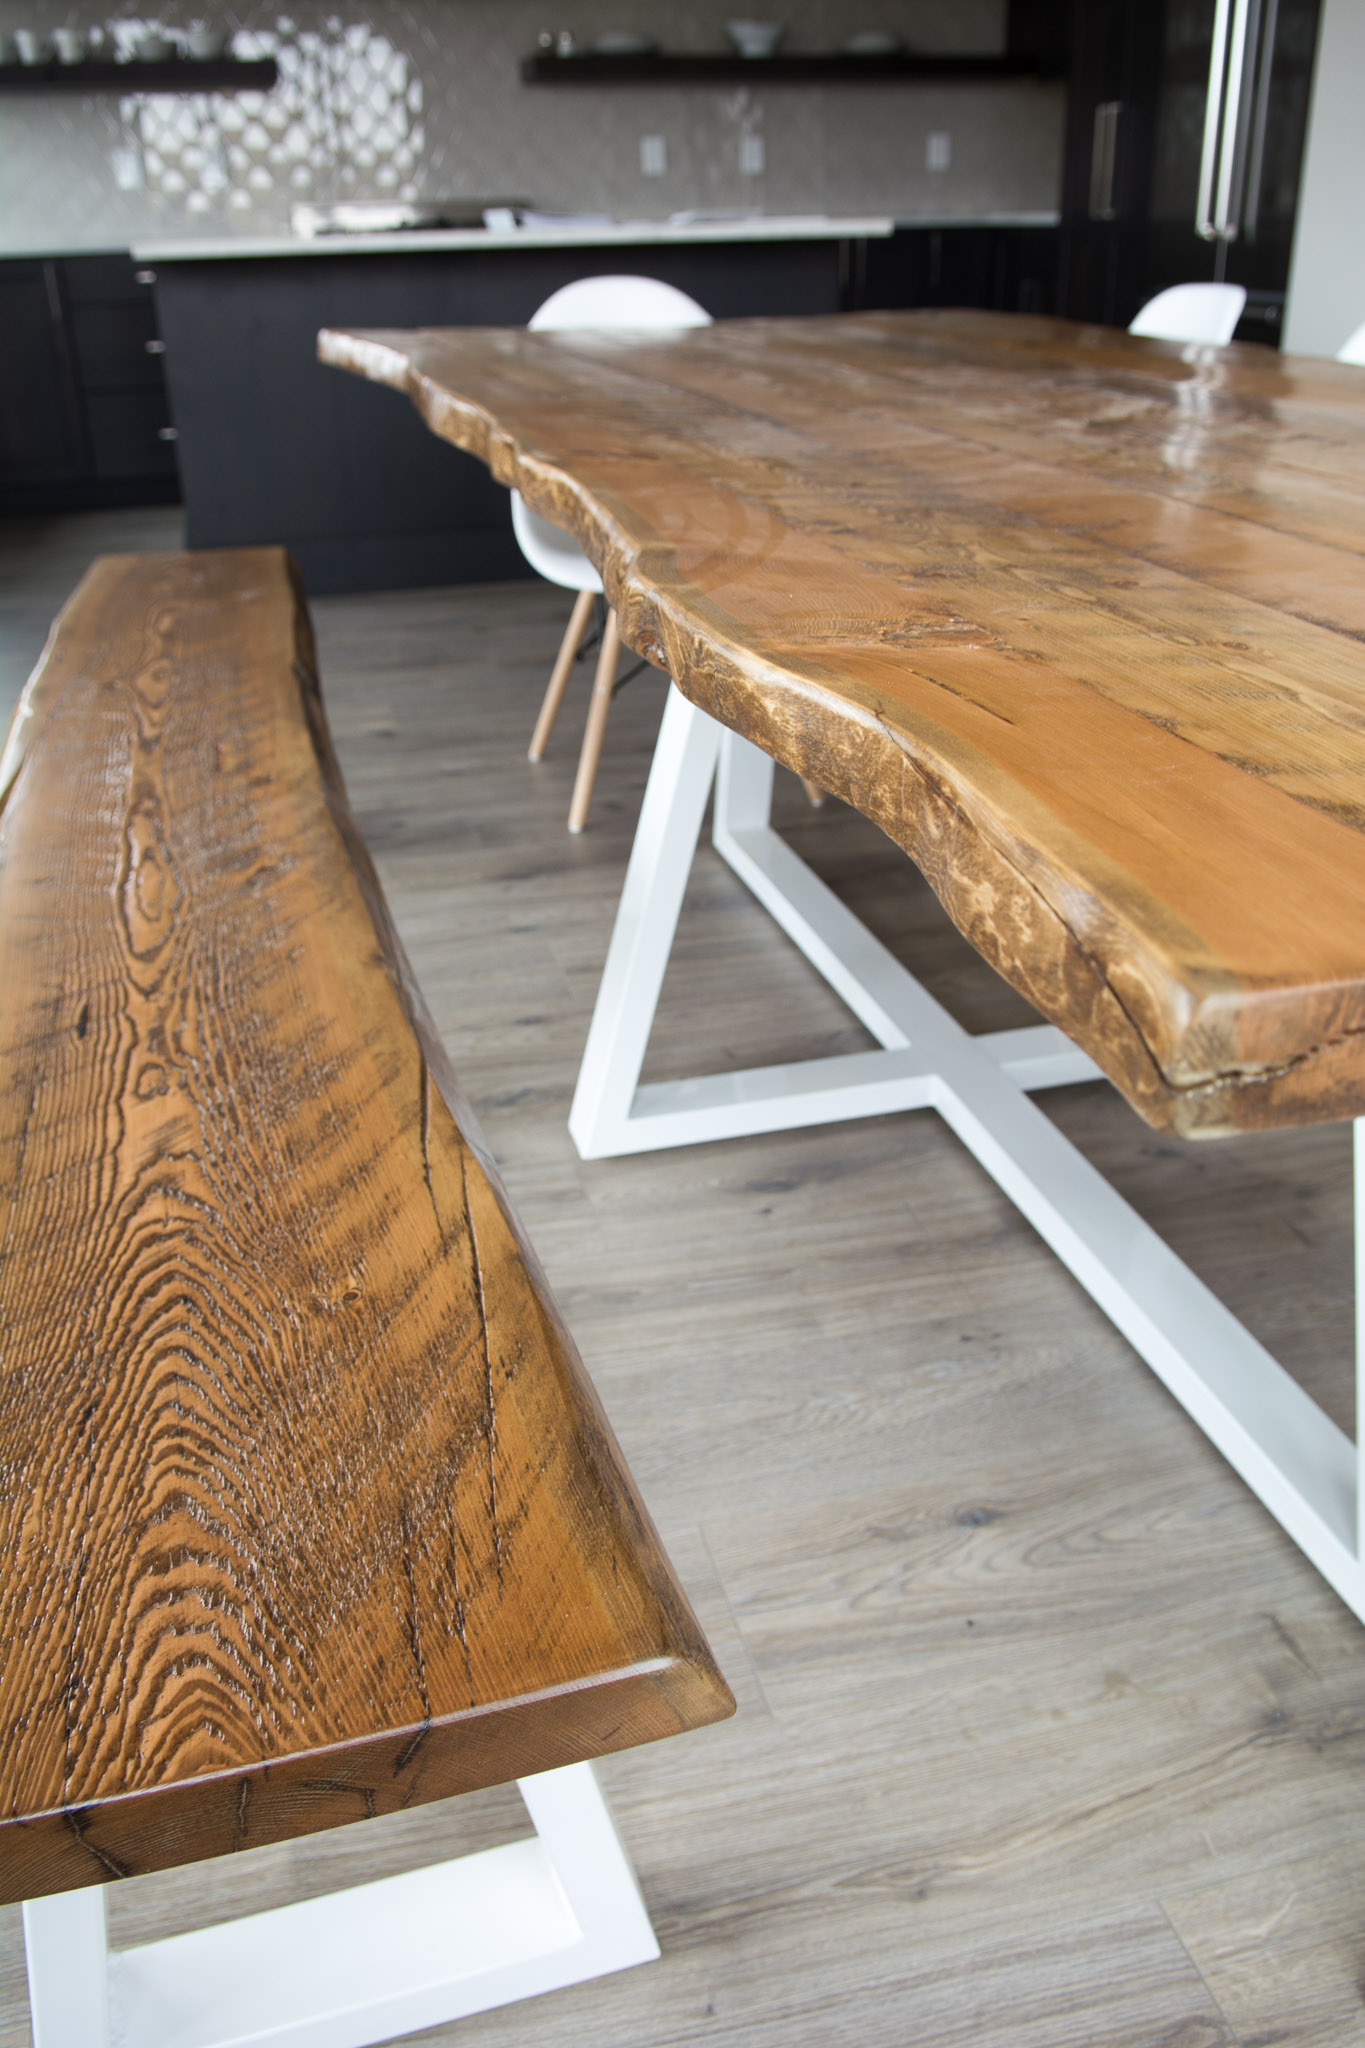 Groovy Modern Live Edge Dining Table With Metal Legs Squirreltailoven Fun Painted Chair Ideas Images Squirreltailovenorg